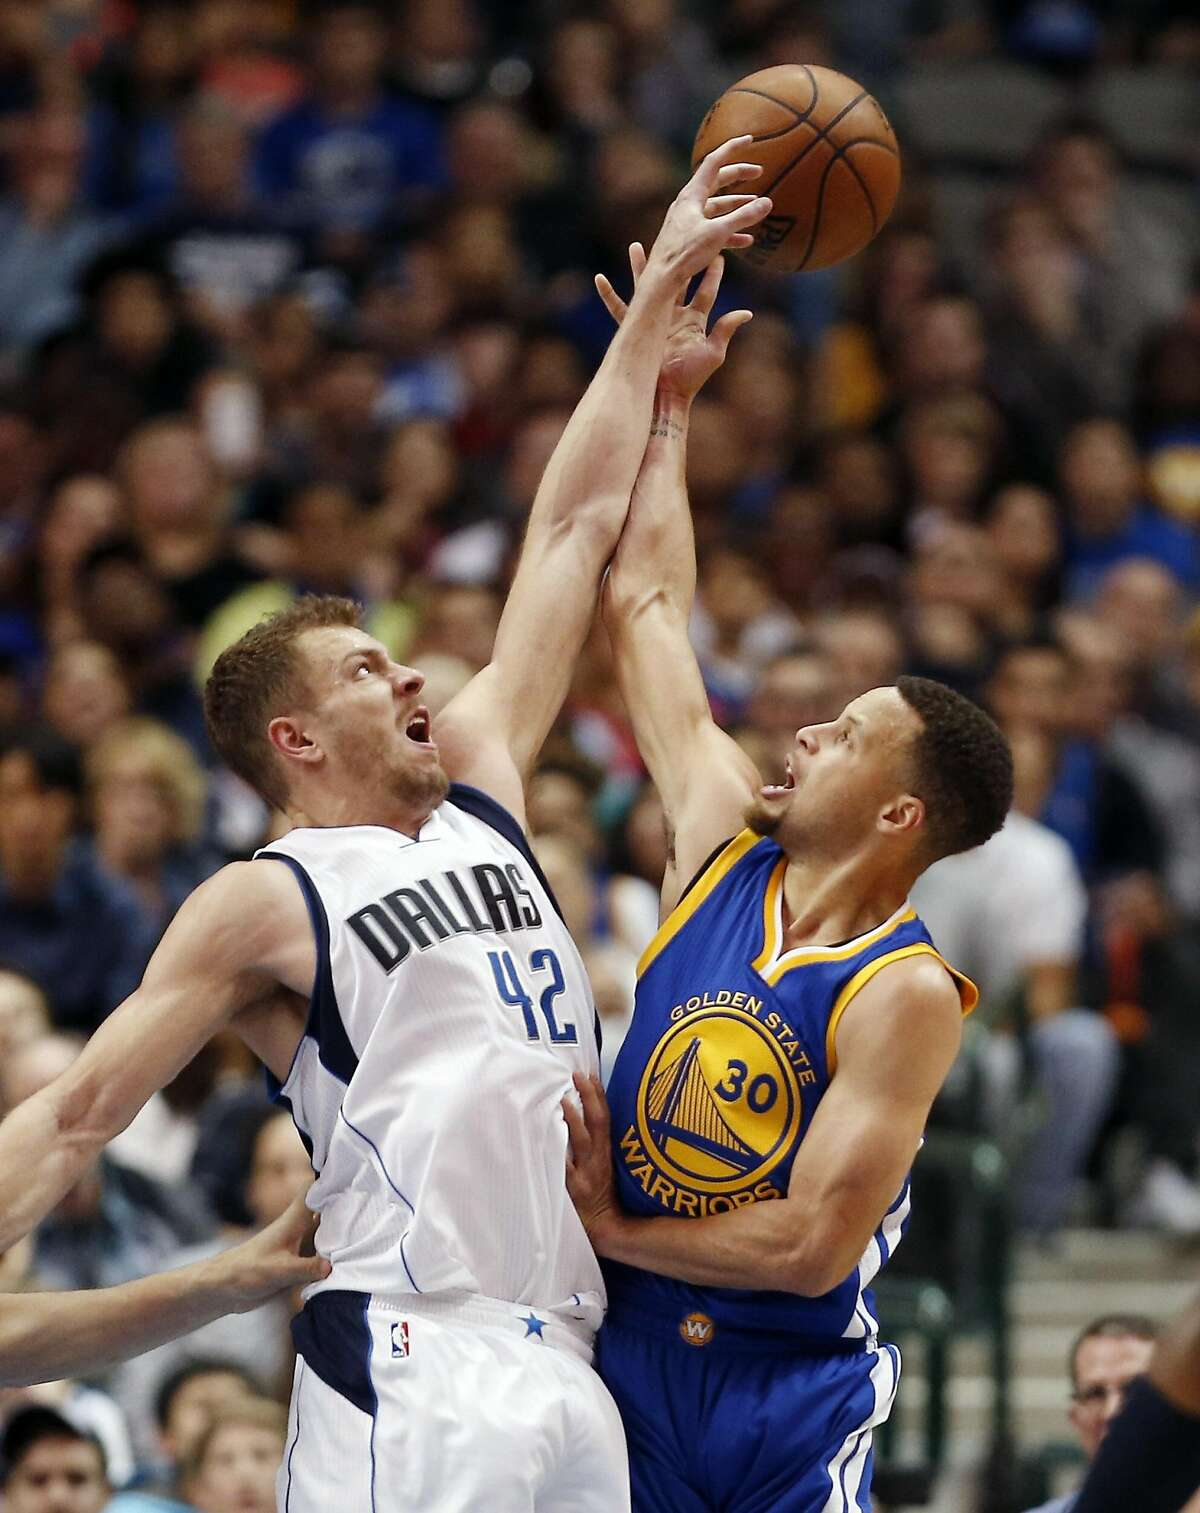 Dallas Mavericks forward David Lee (42) blocks a shot by Golden State Warriors guard Stephen Curry (30) during the first half of an NBA basketball game Friday, March 18, 2016, in Dallas. (AP Photo/Brandon Wade)